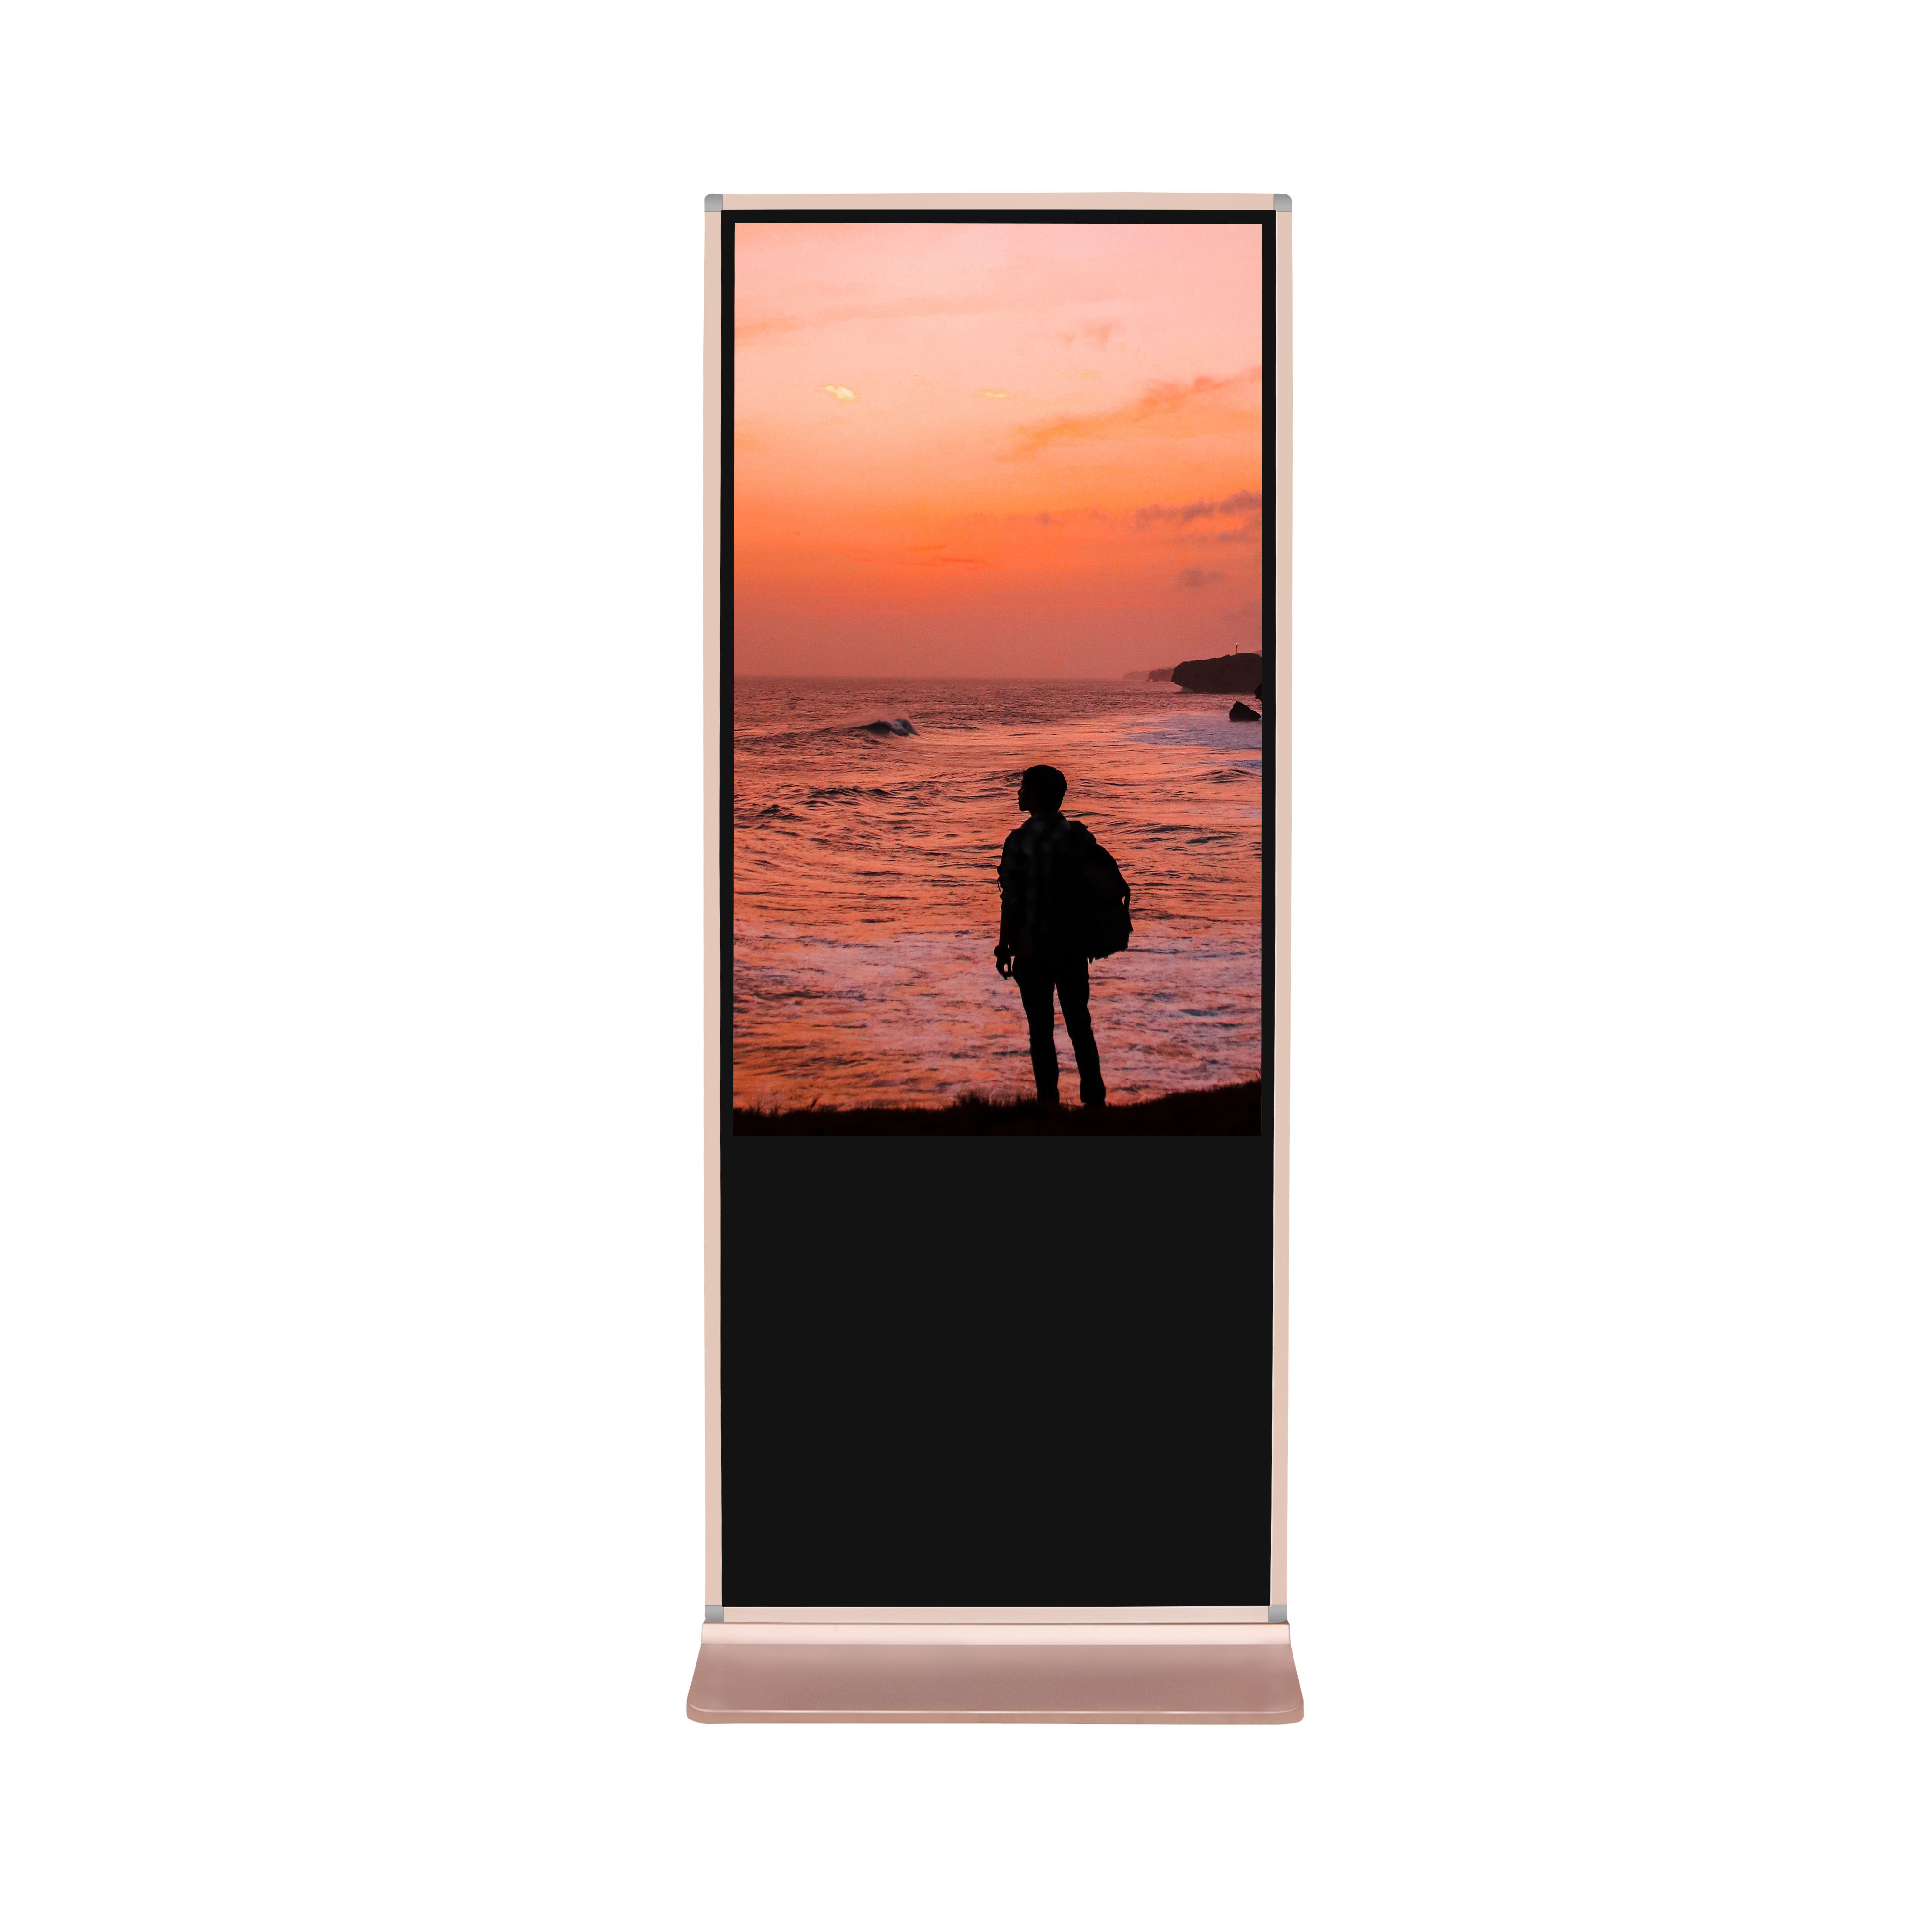 55 polegadas Android Rede Floor Standing Lcd Publicidade Digital Signage <span class=keywords><strong>Media</strong></span> <span class=keywords><strong>Player</strong></span>